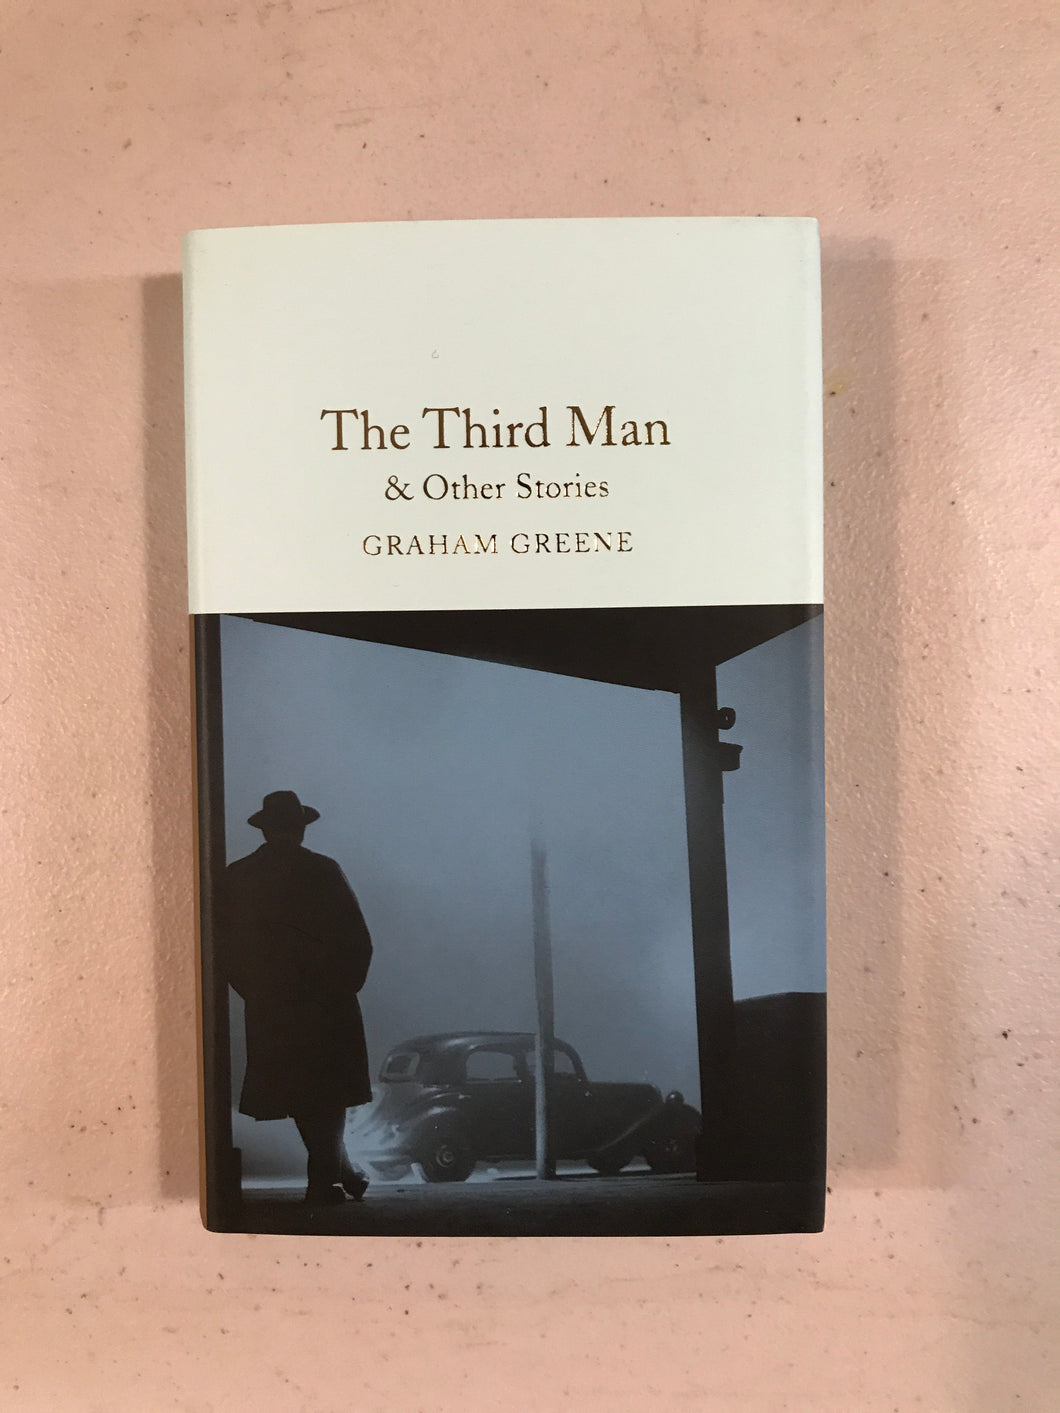 The Third Man & Other Stories